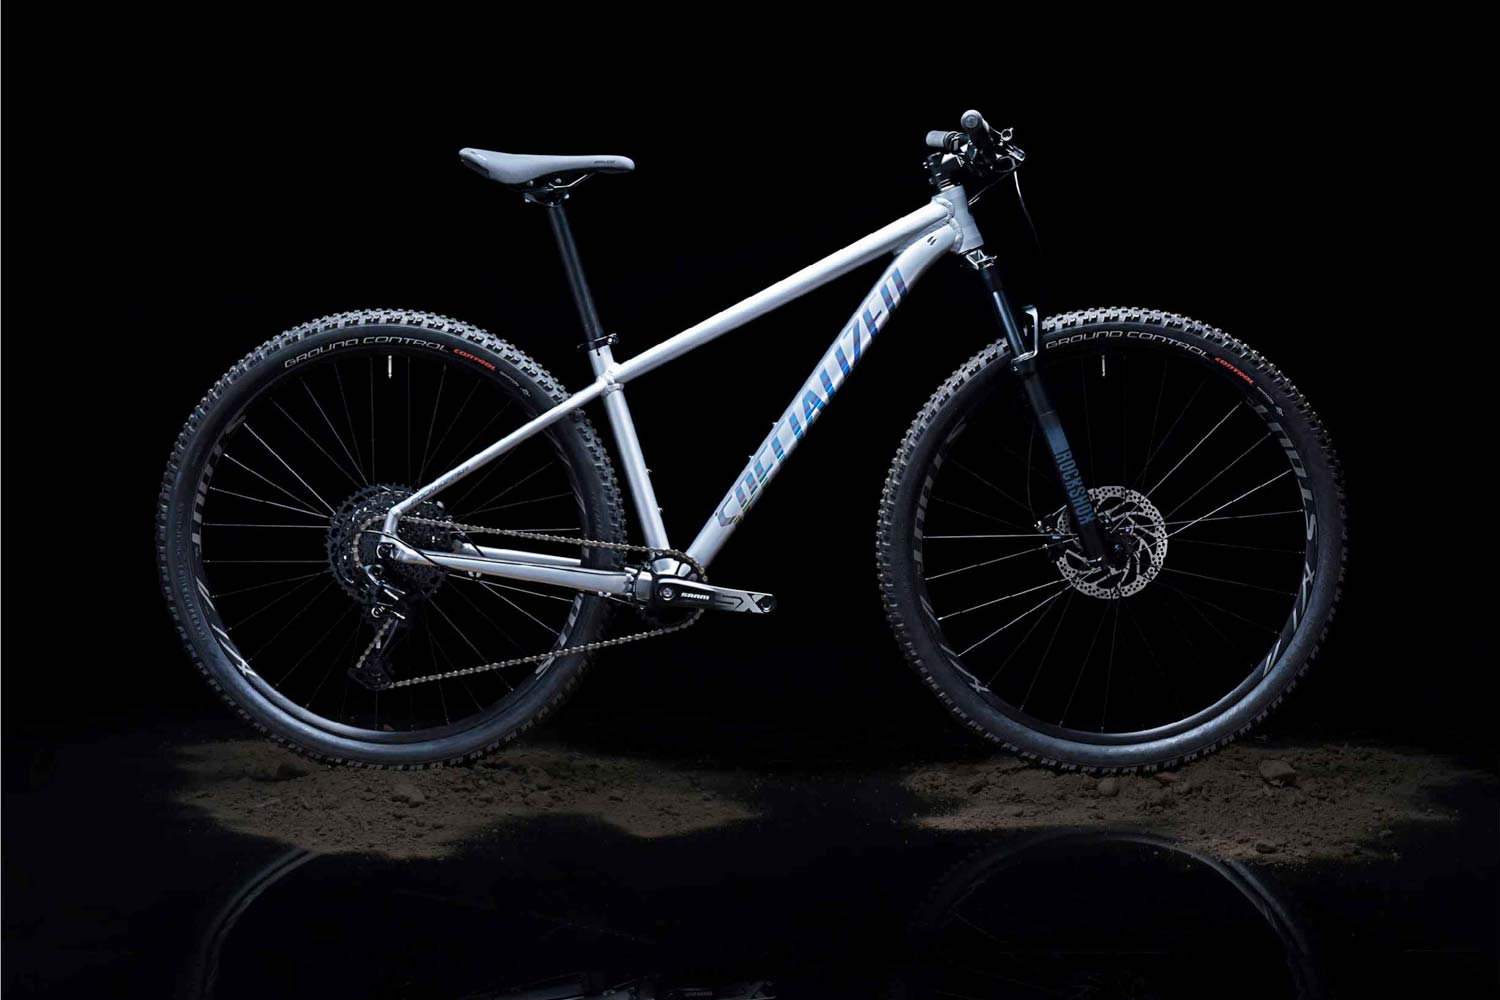 Best Hardtail Mountain Bike 2021 2021 Specialized Rockhopper reshapes affordable XC hardtail